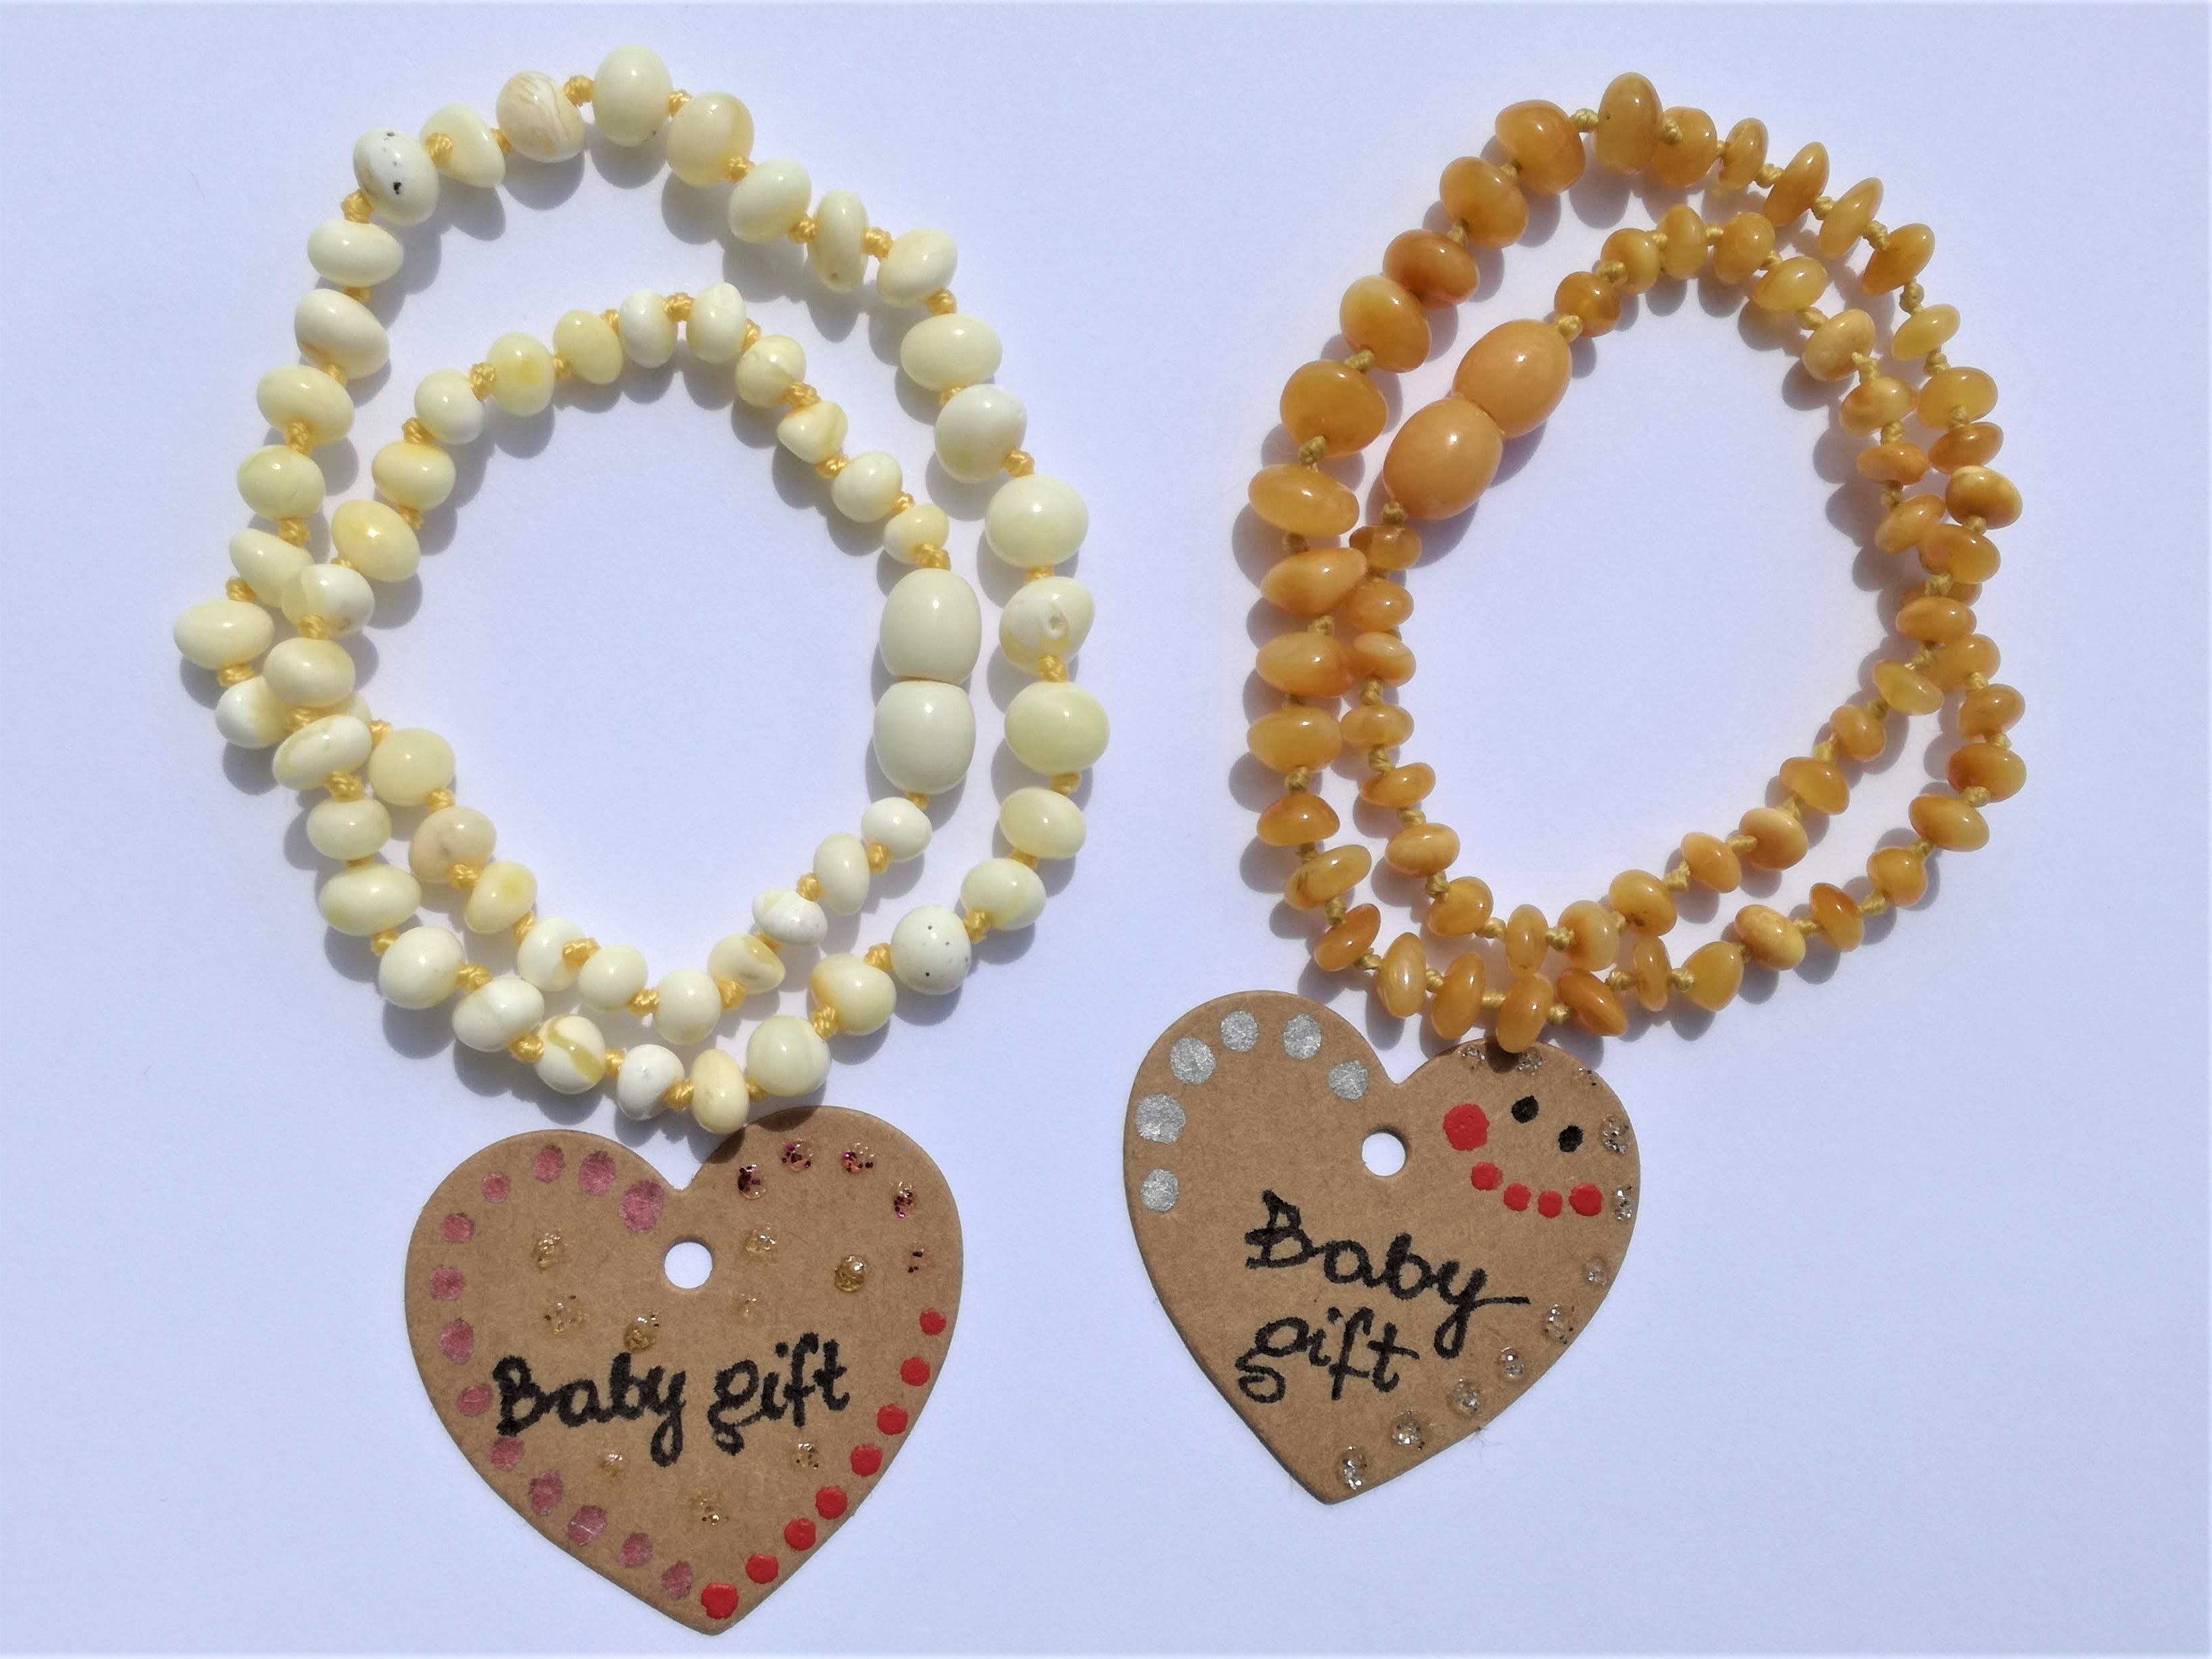 amber teething necklace, limited edition, premium products, white and antiqued polished beads, plastic screw clasp, healing, succinic acid, genuine baltic amber, safe for babies and nursing mums, made in poland,  personalized labels available